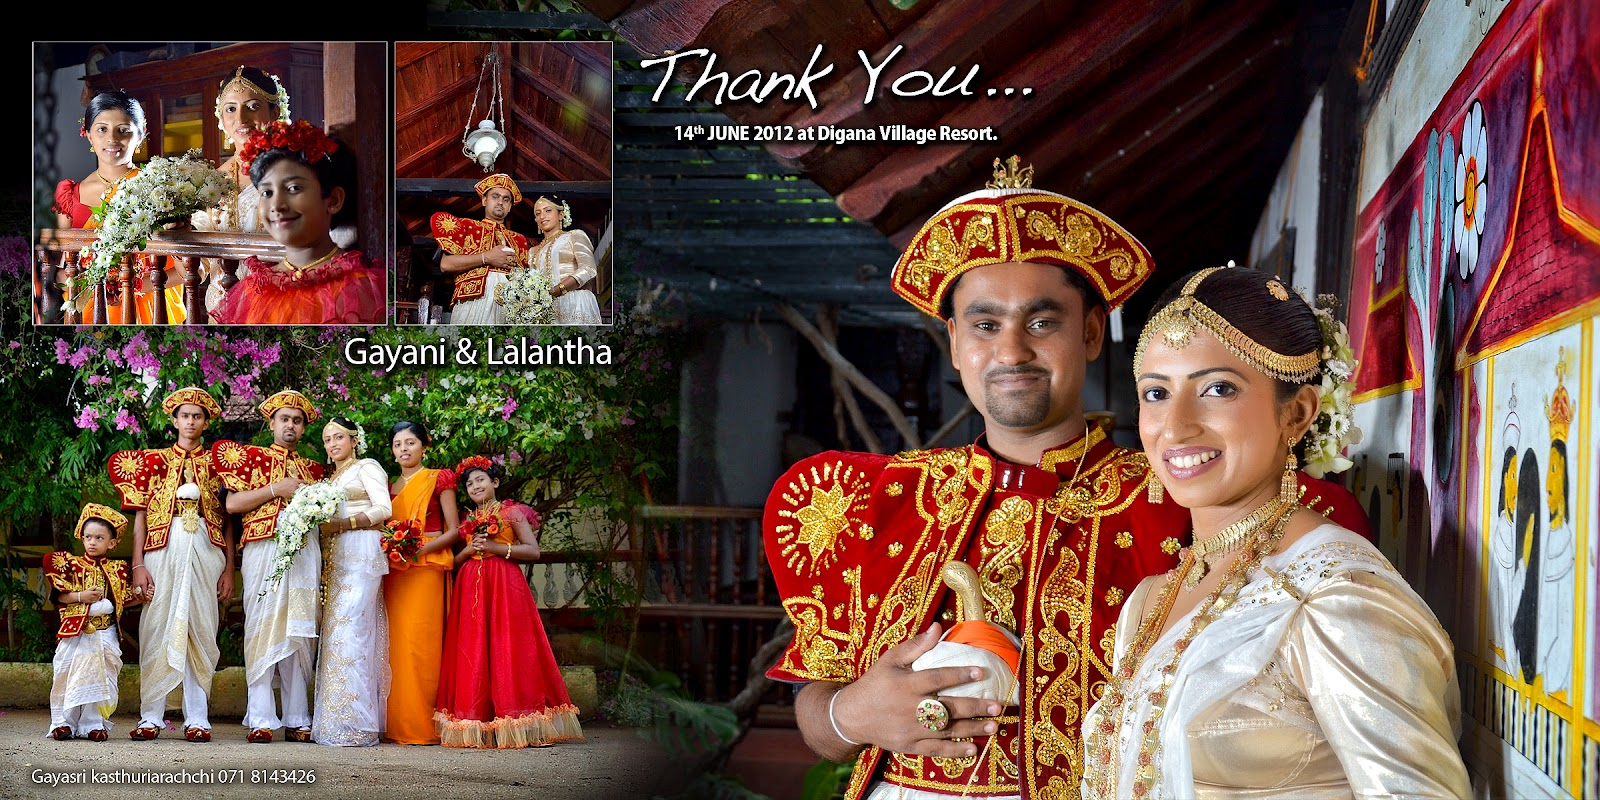 Wishing You Gayani And Lalantha A Very Happy Wedded Life Life In